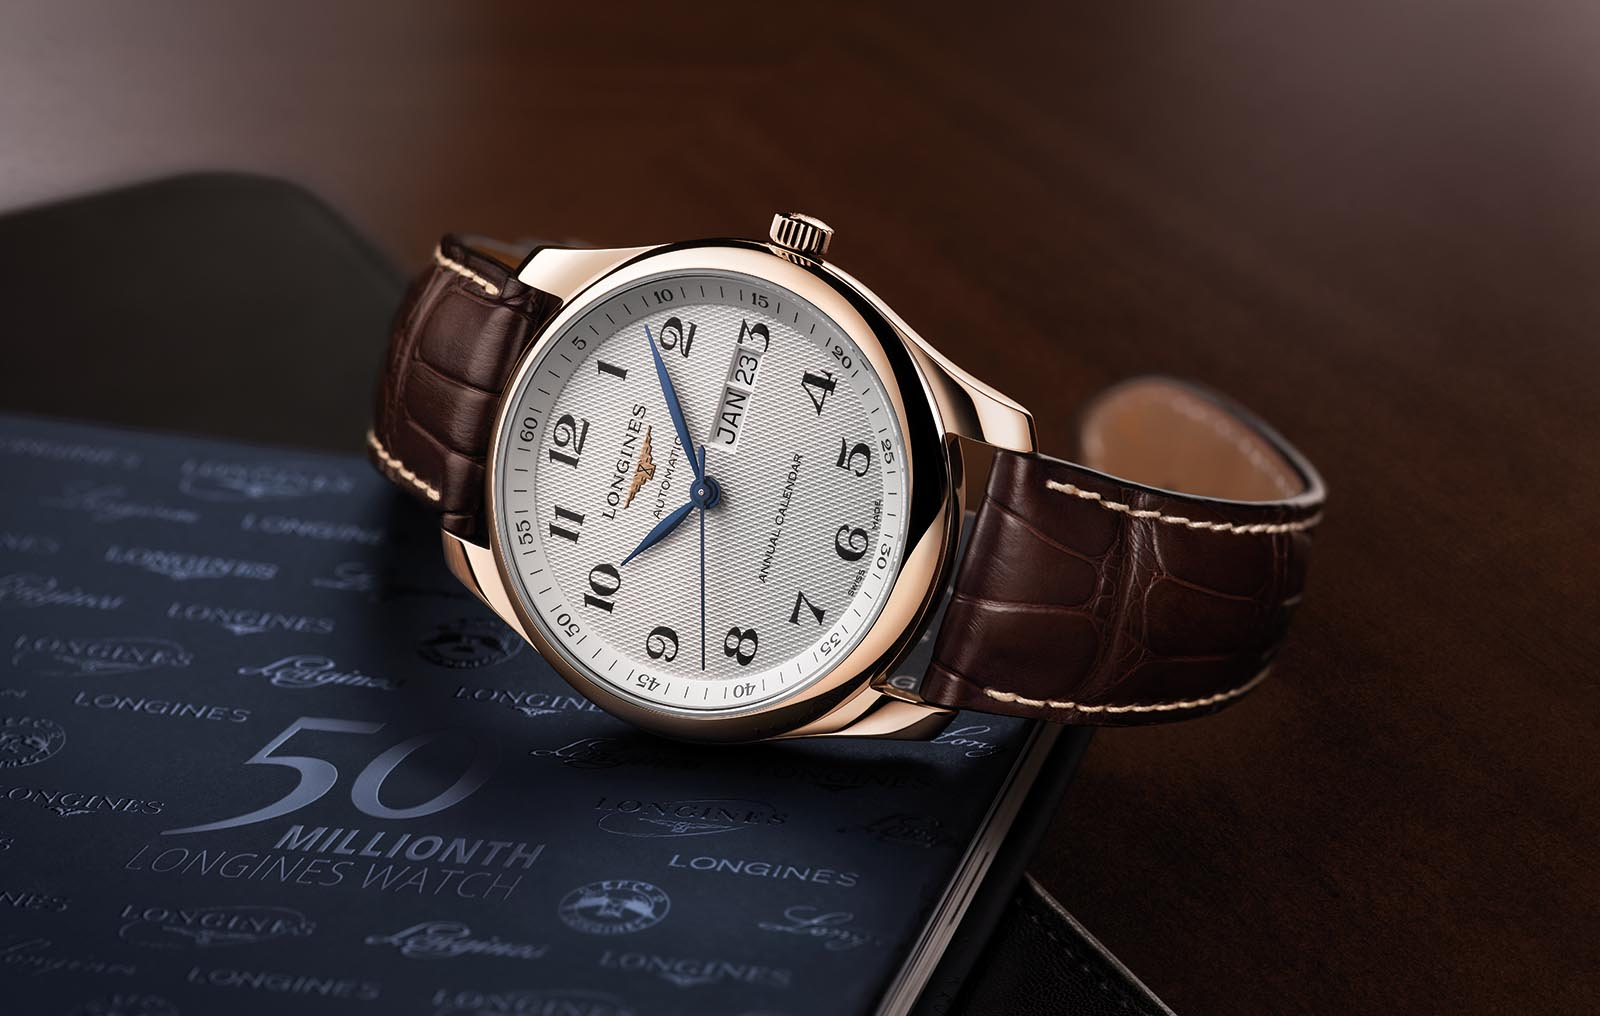 Longines 50 Millionth Watch - Annual Calendar